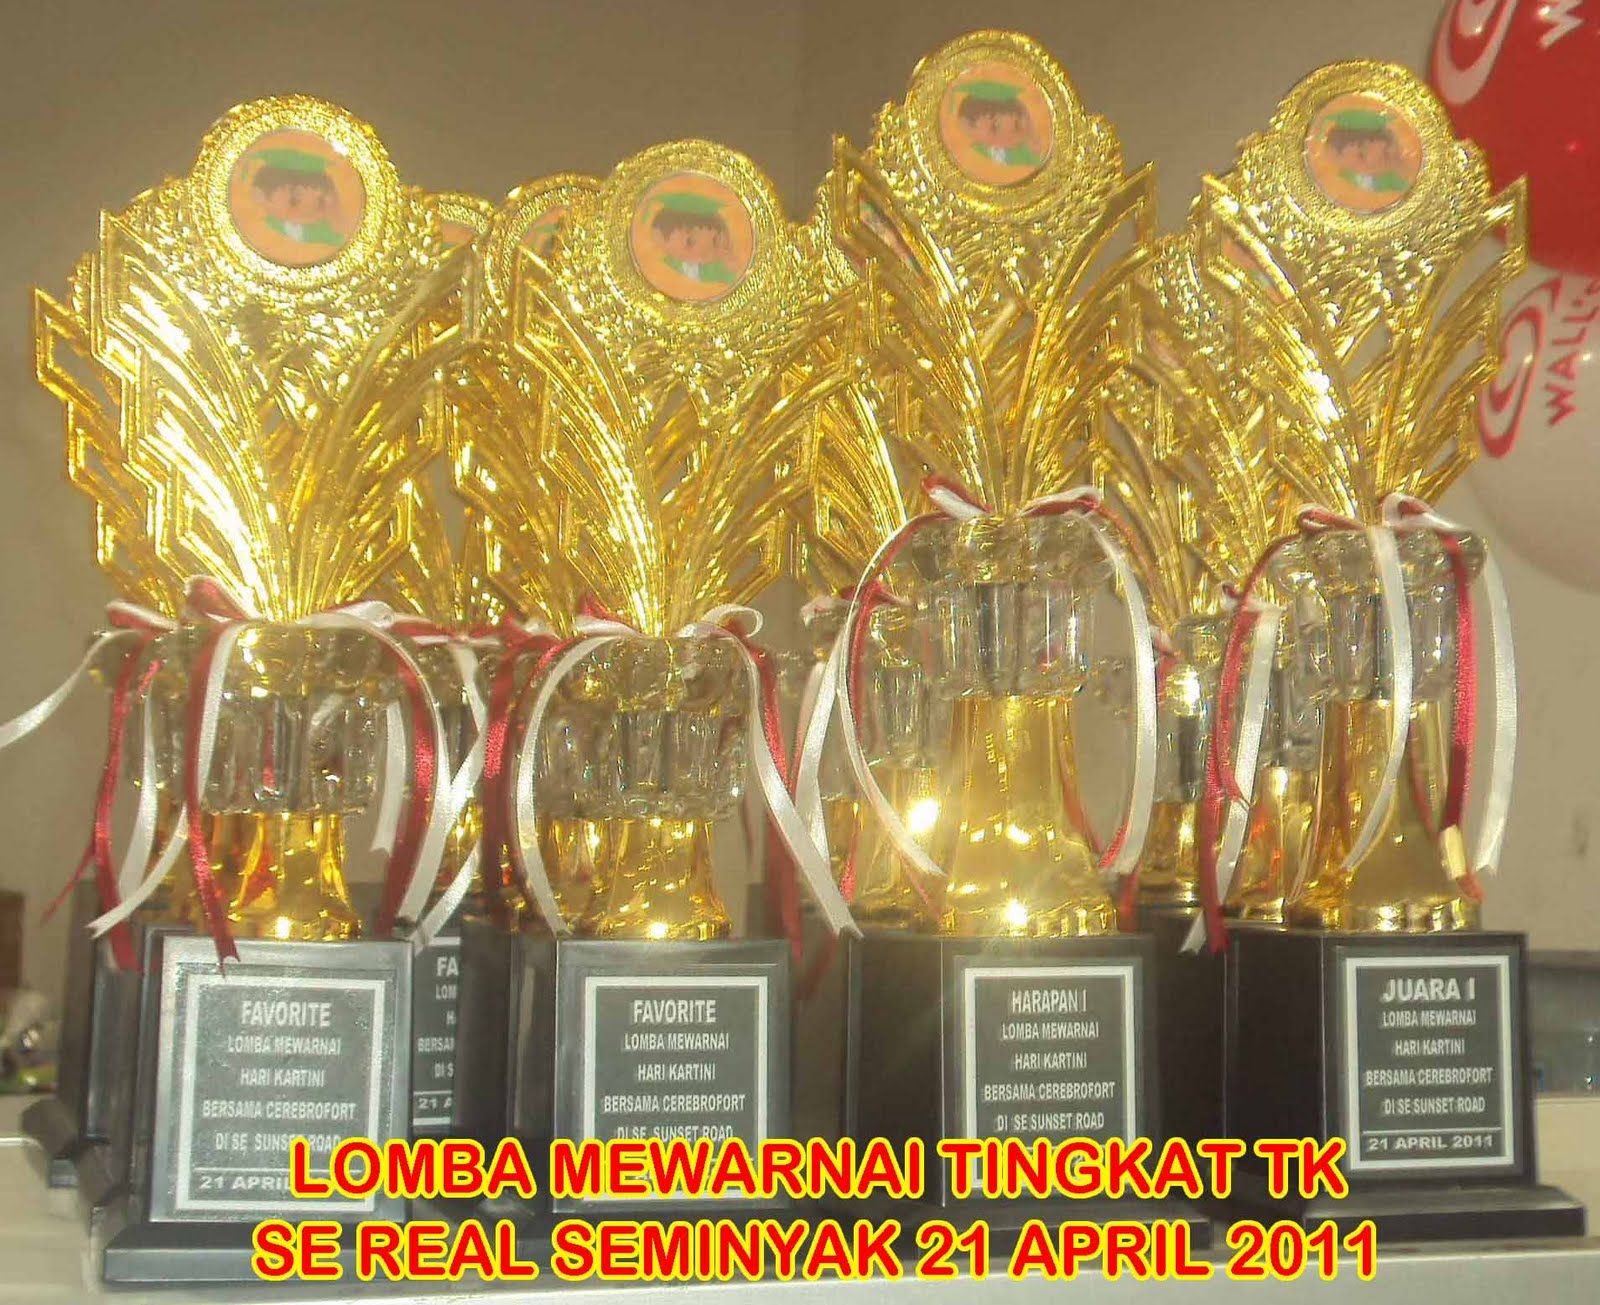 LOMBA MEWARNAI DI SUNSET POINT TGL 21 APRIL 2011